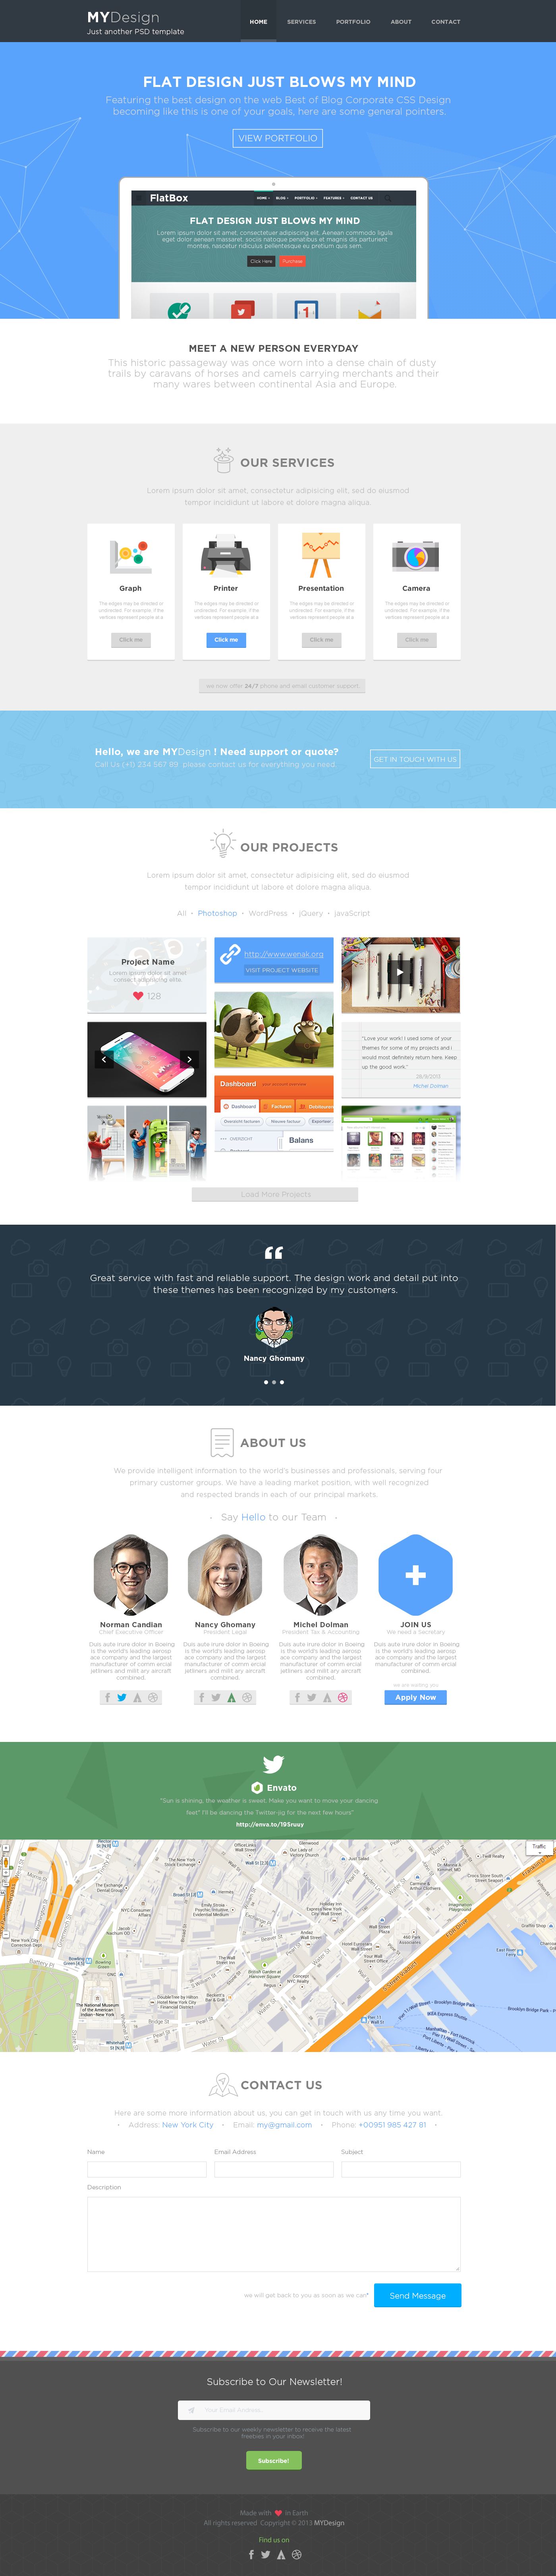 MYDesign - Onepage Multipurpose Flat HTML Template - 3